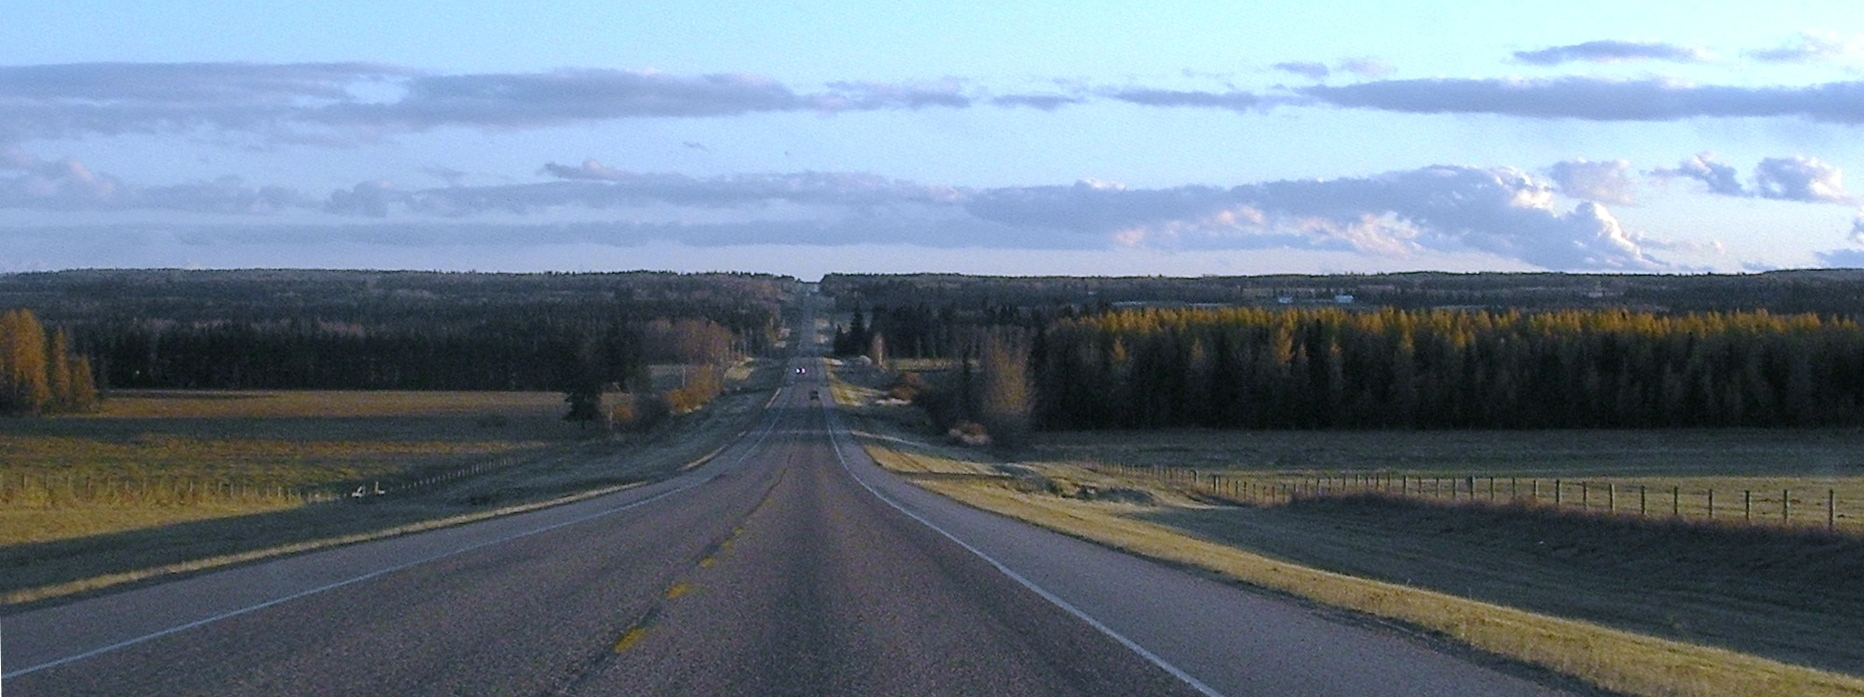 Mountain View County Travel Guide At Wikivoyage